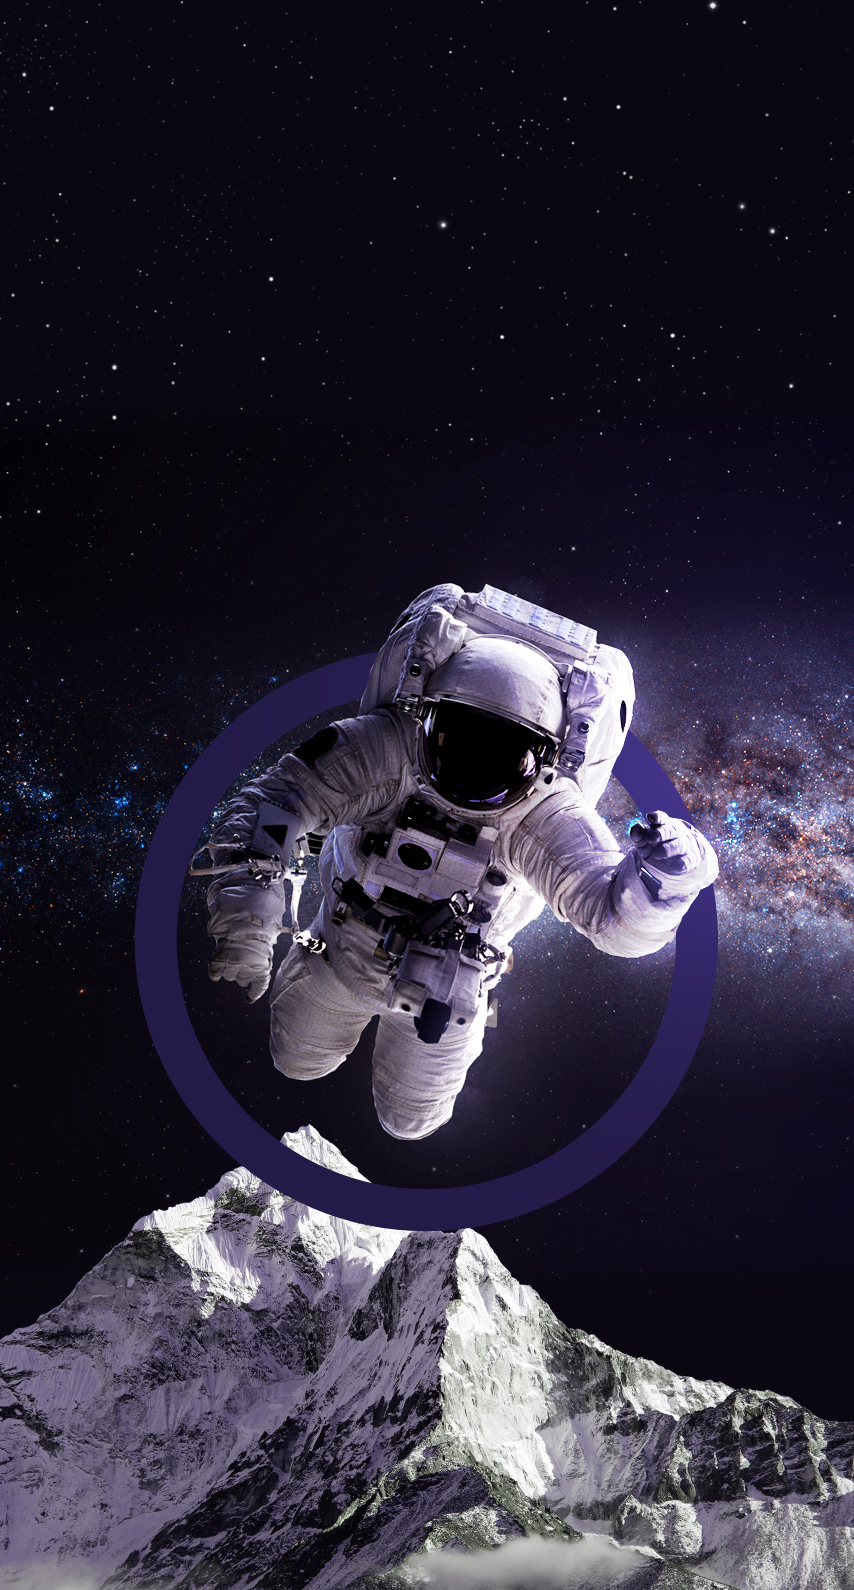 computer wallpaper, outer space